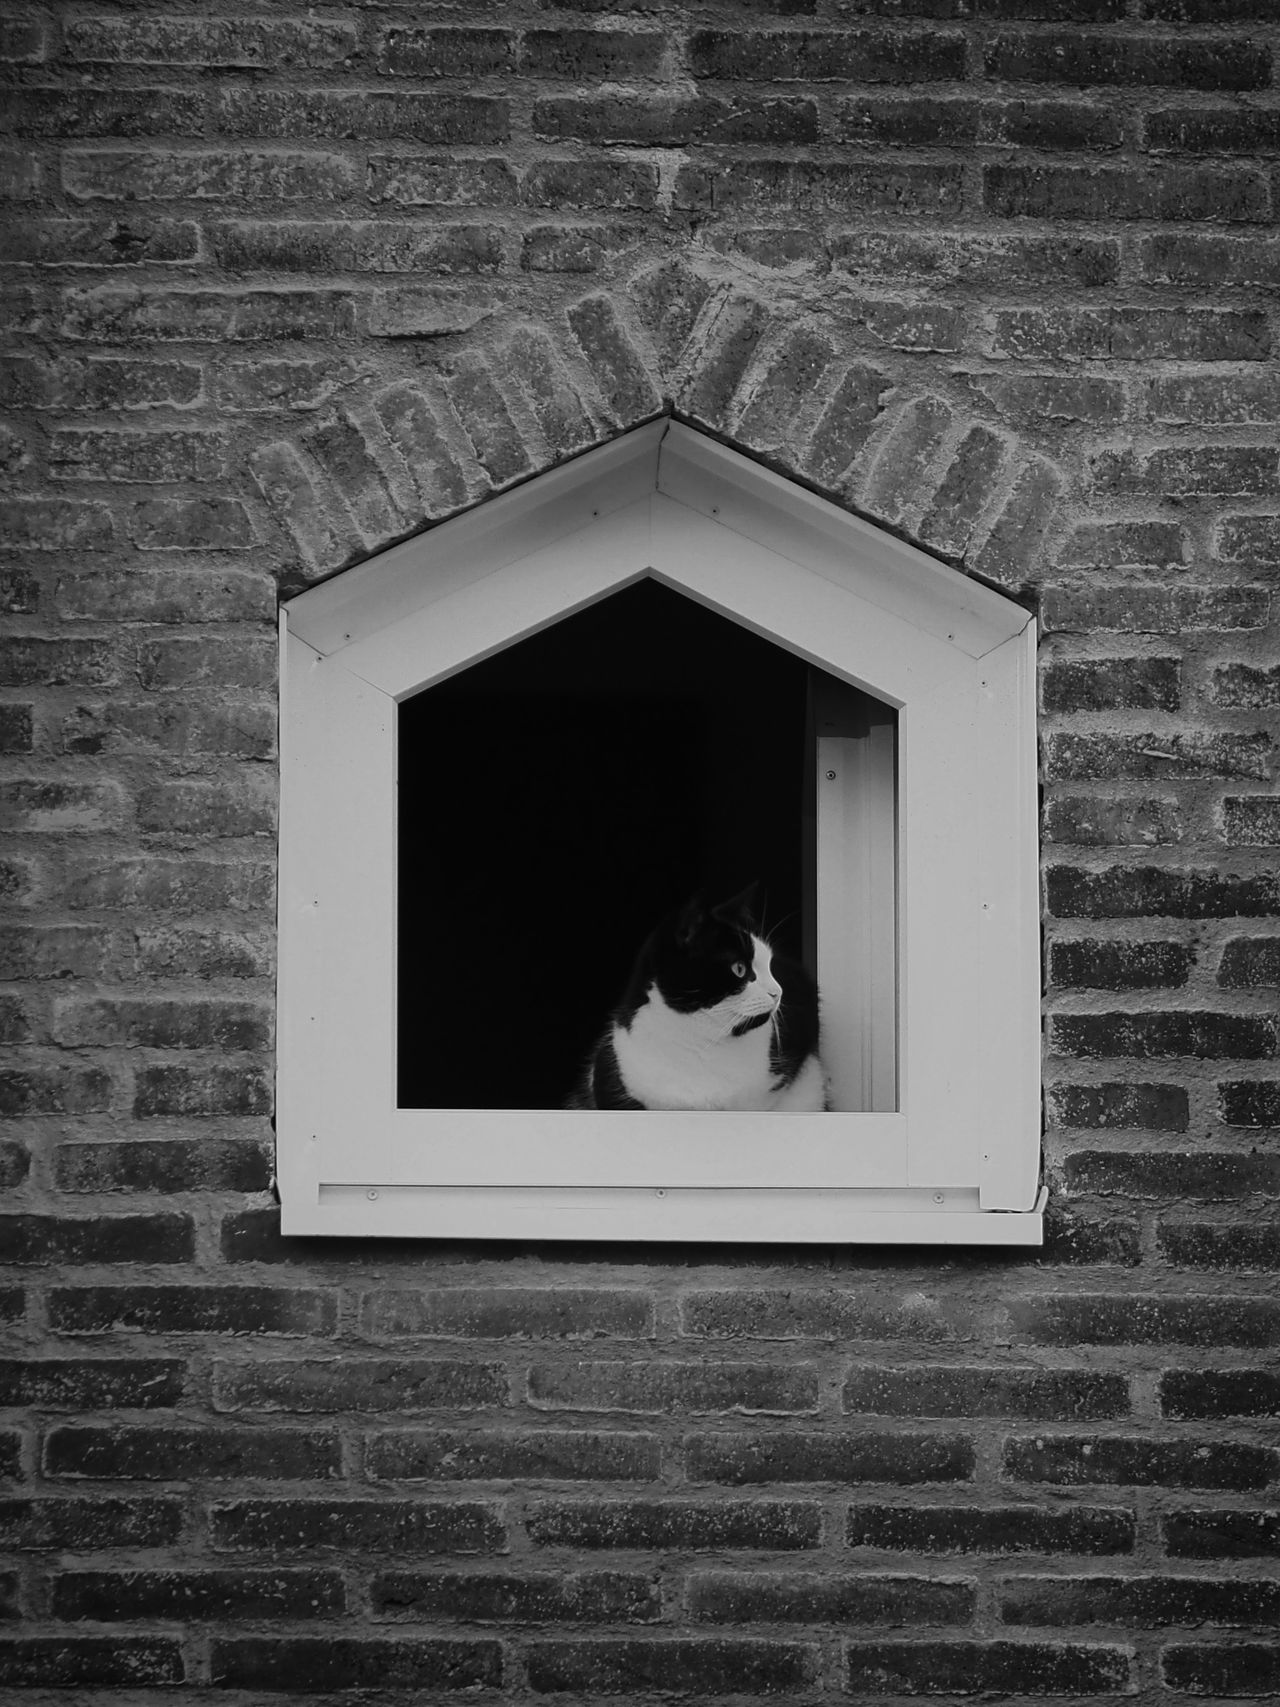 Cat Katt Svartvitt Blackandwhite Window Fönster Framing M.Zuiko 45mm 1:1,8 Brick Wall